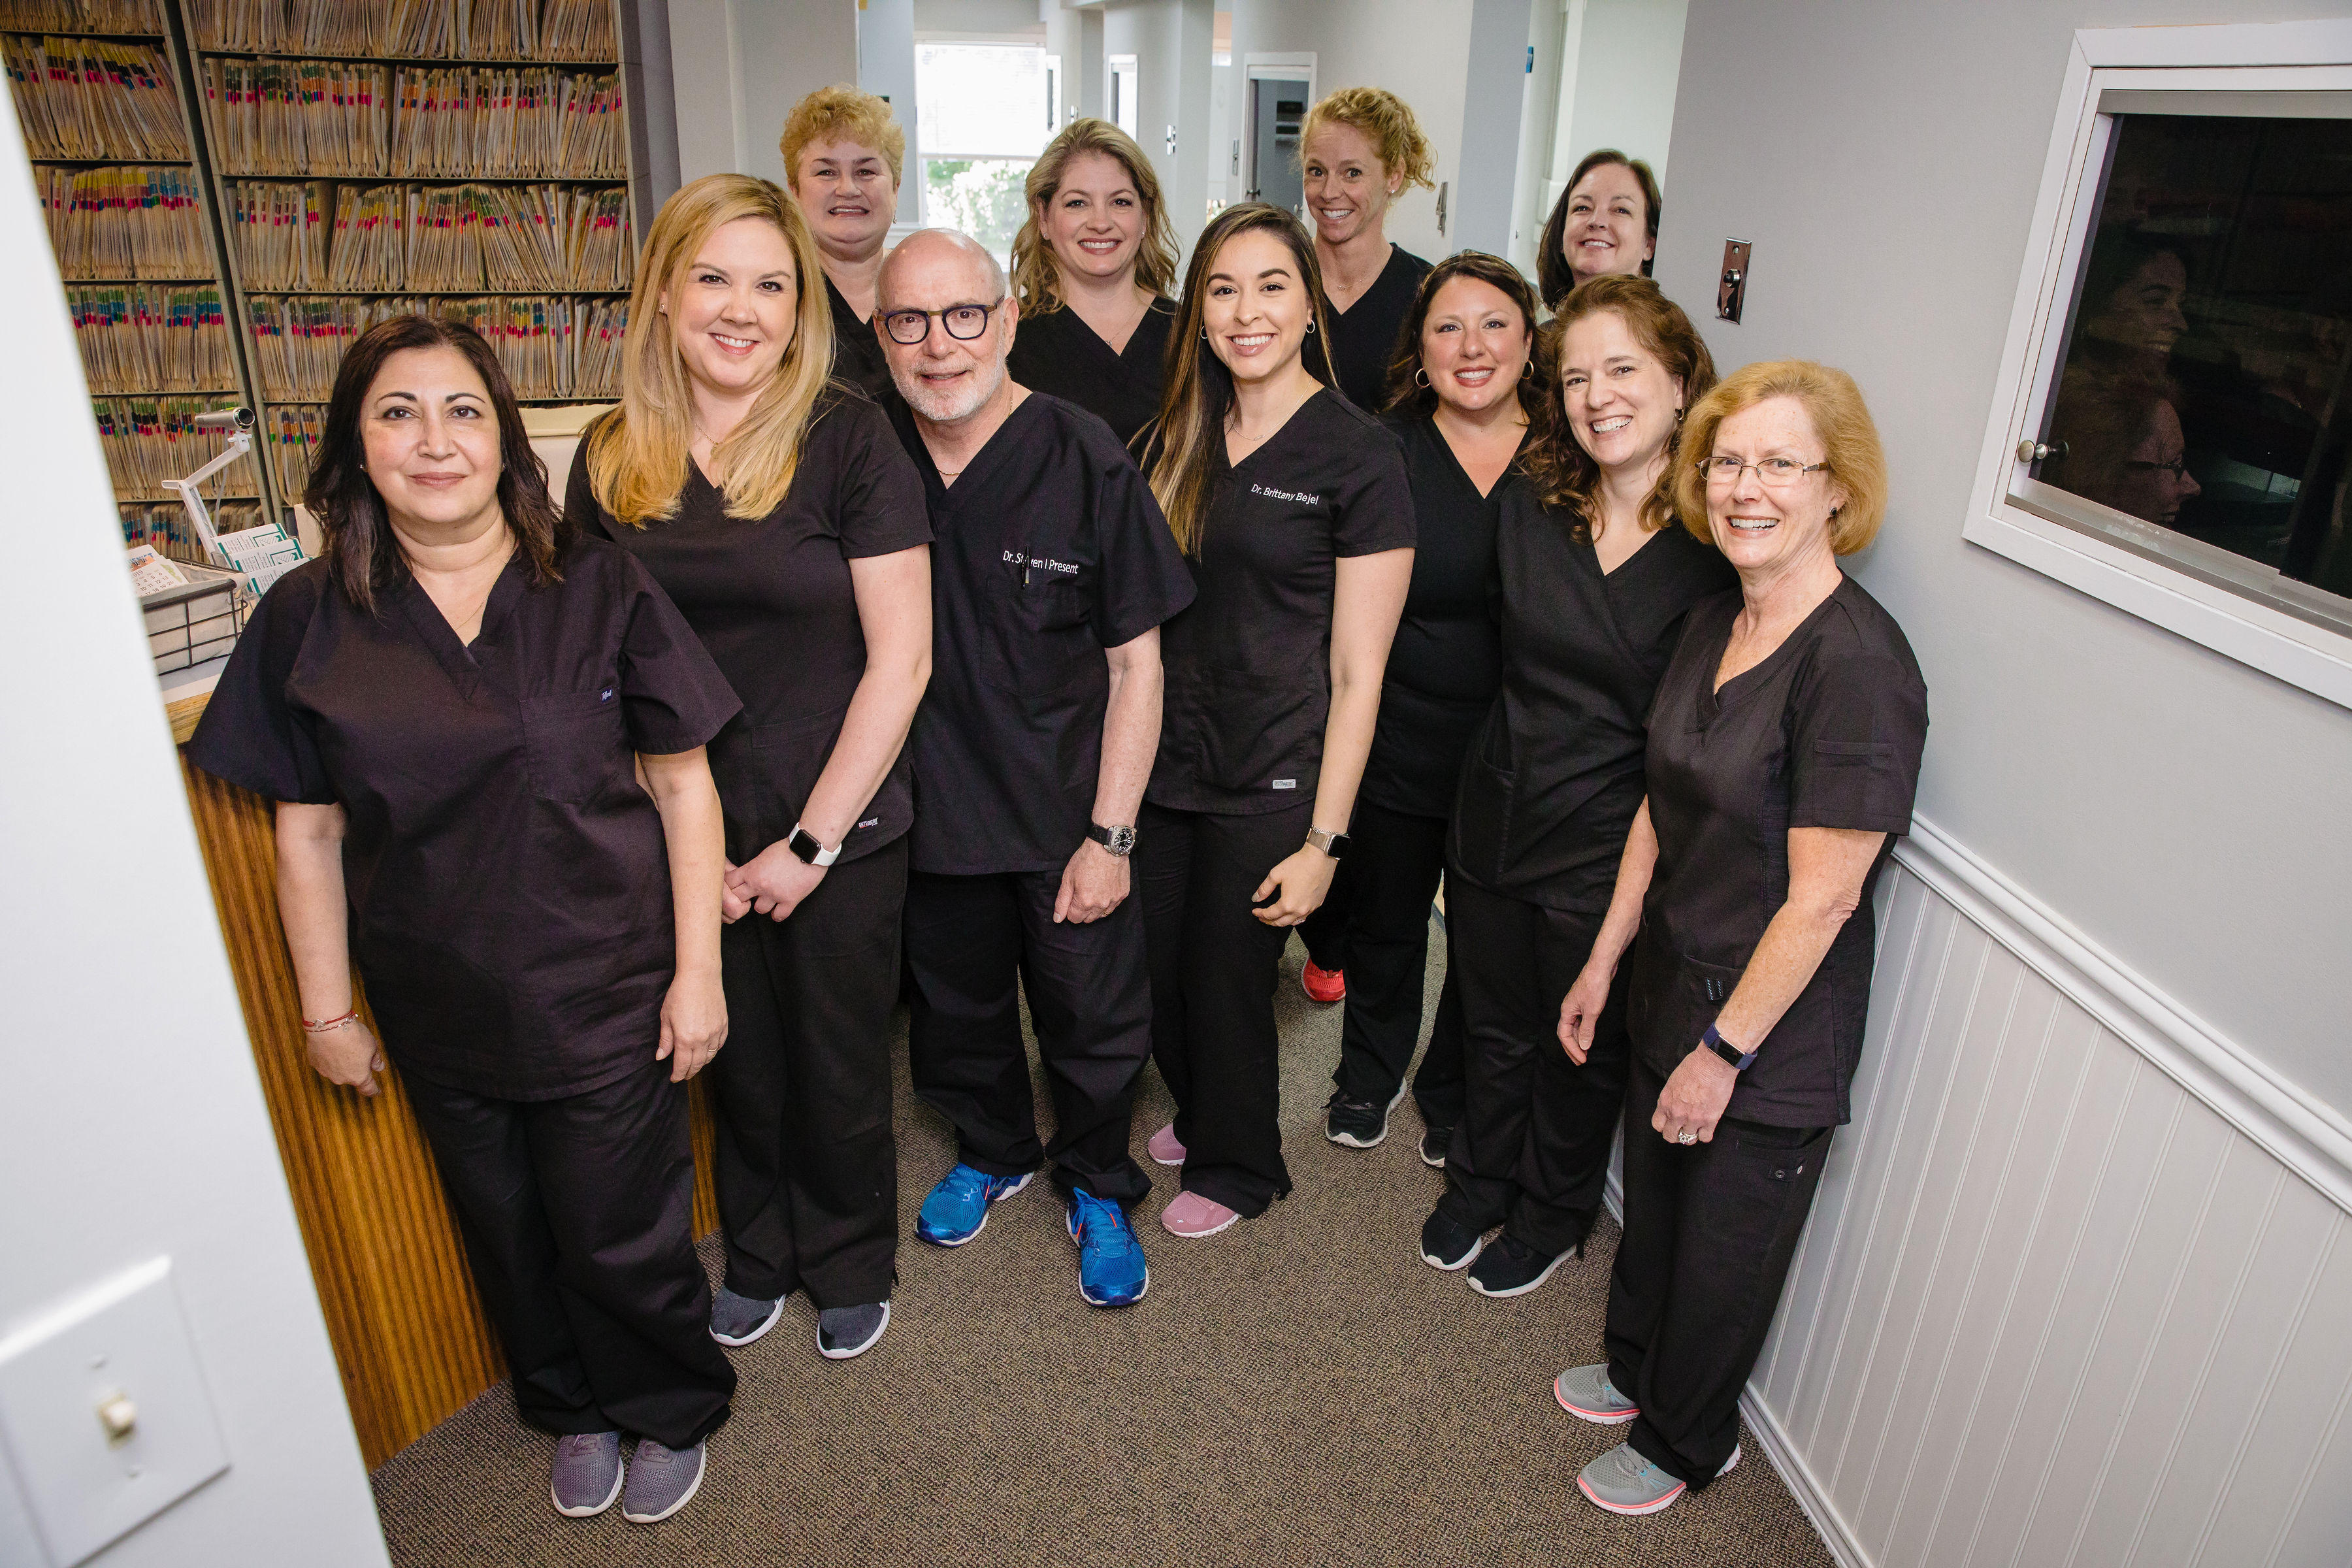 Drs. Bejel & Present - North Wales Family Dentistry